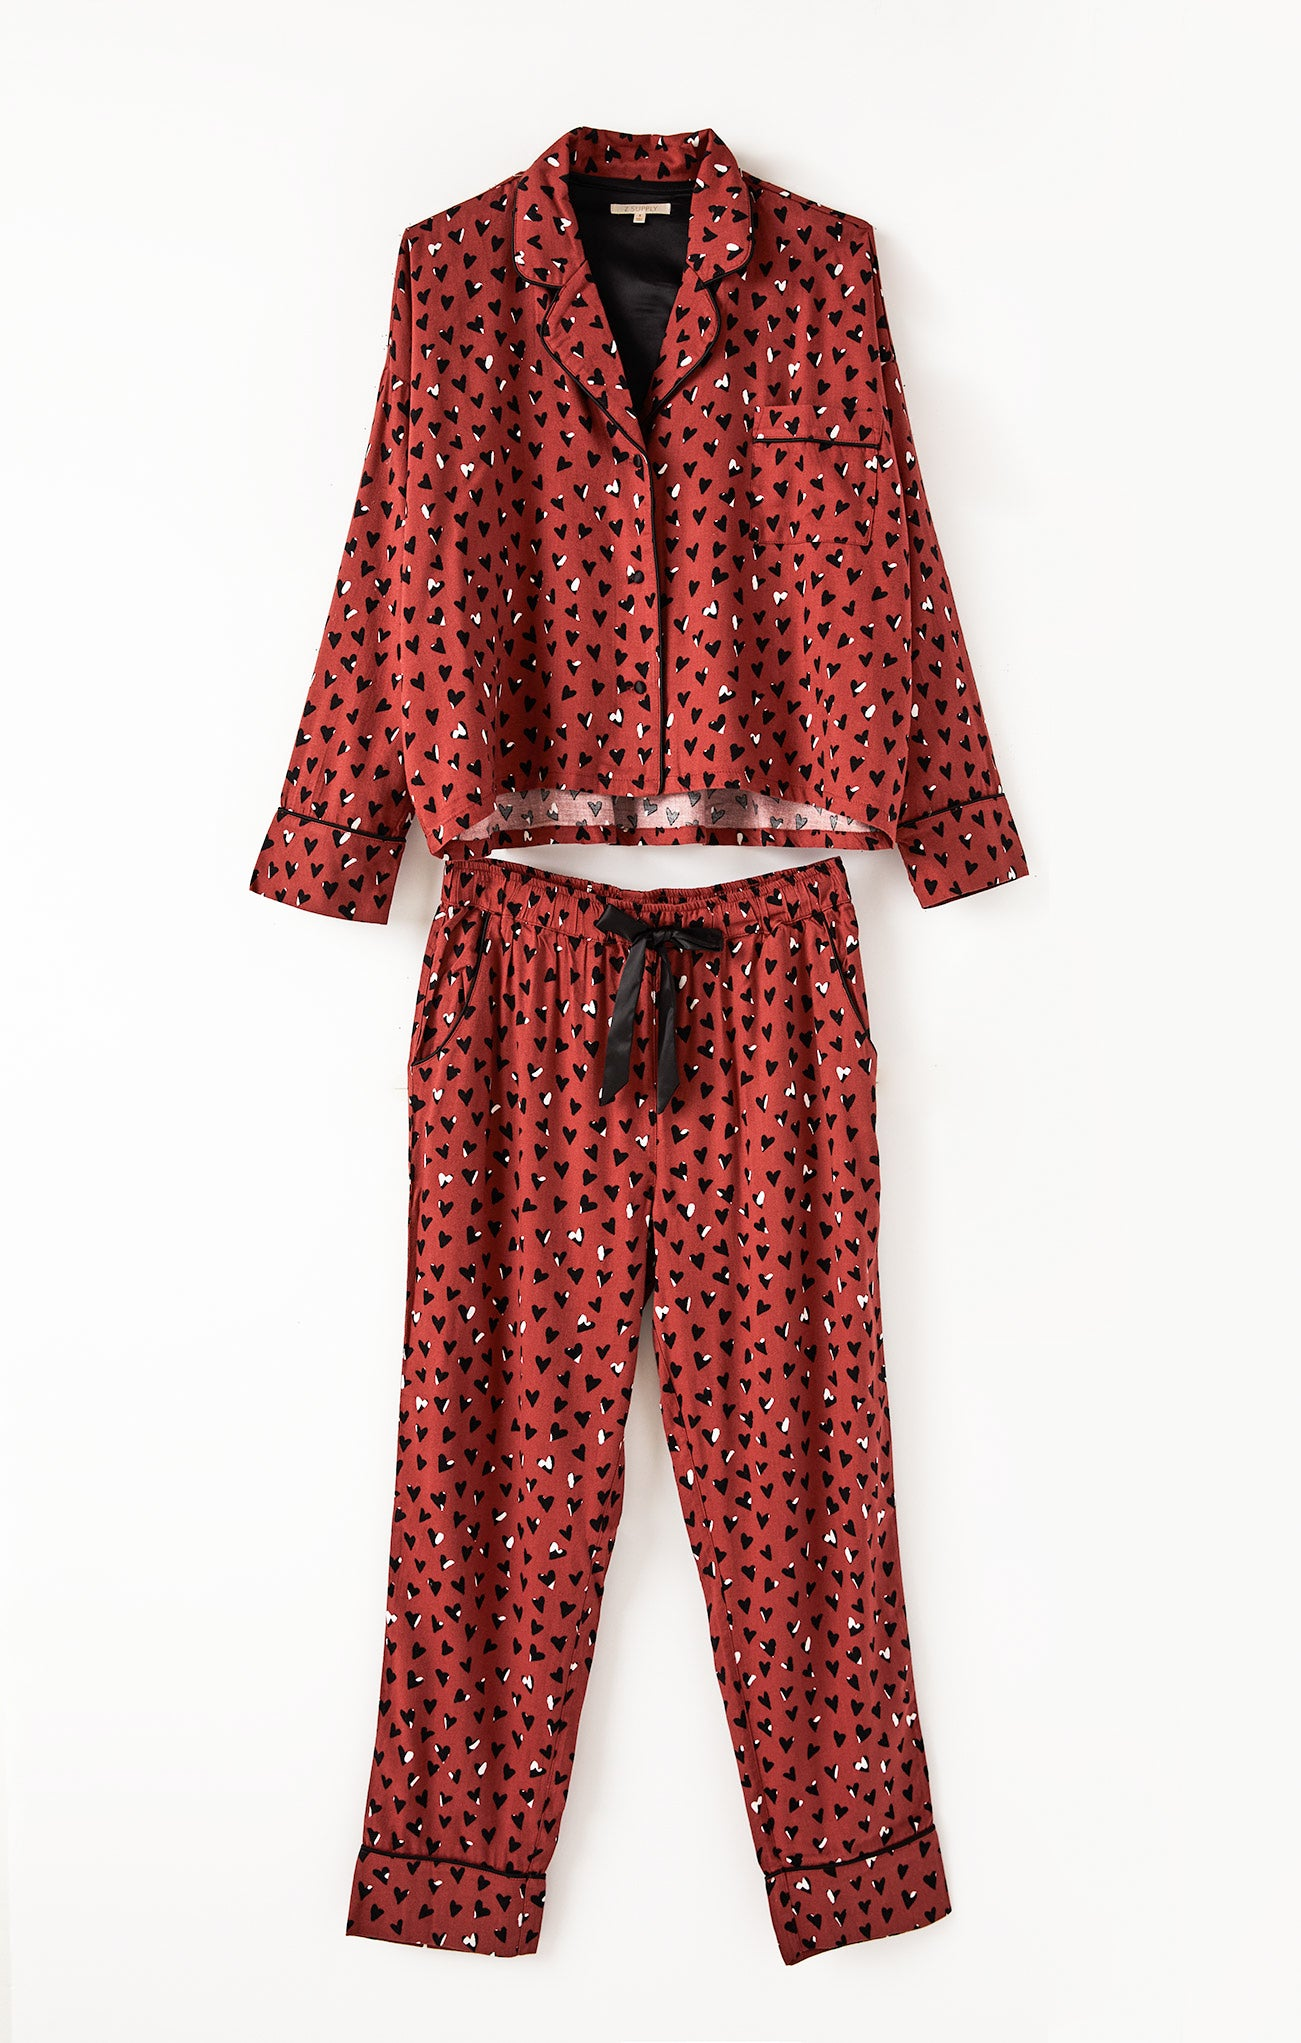 Tops Dream State Heart PJ Set Rosy Red